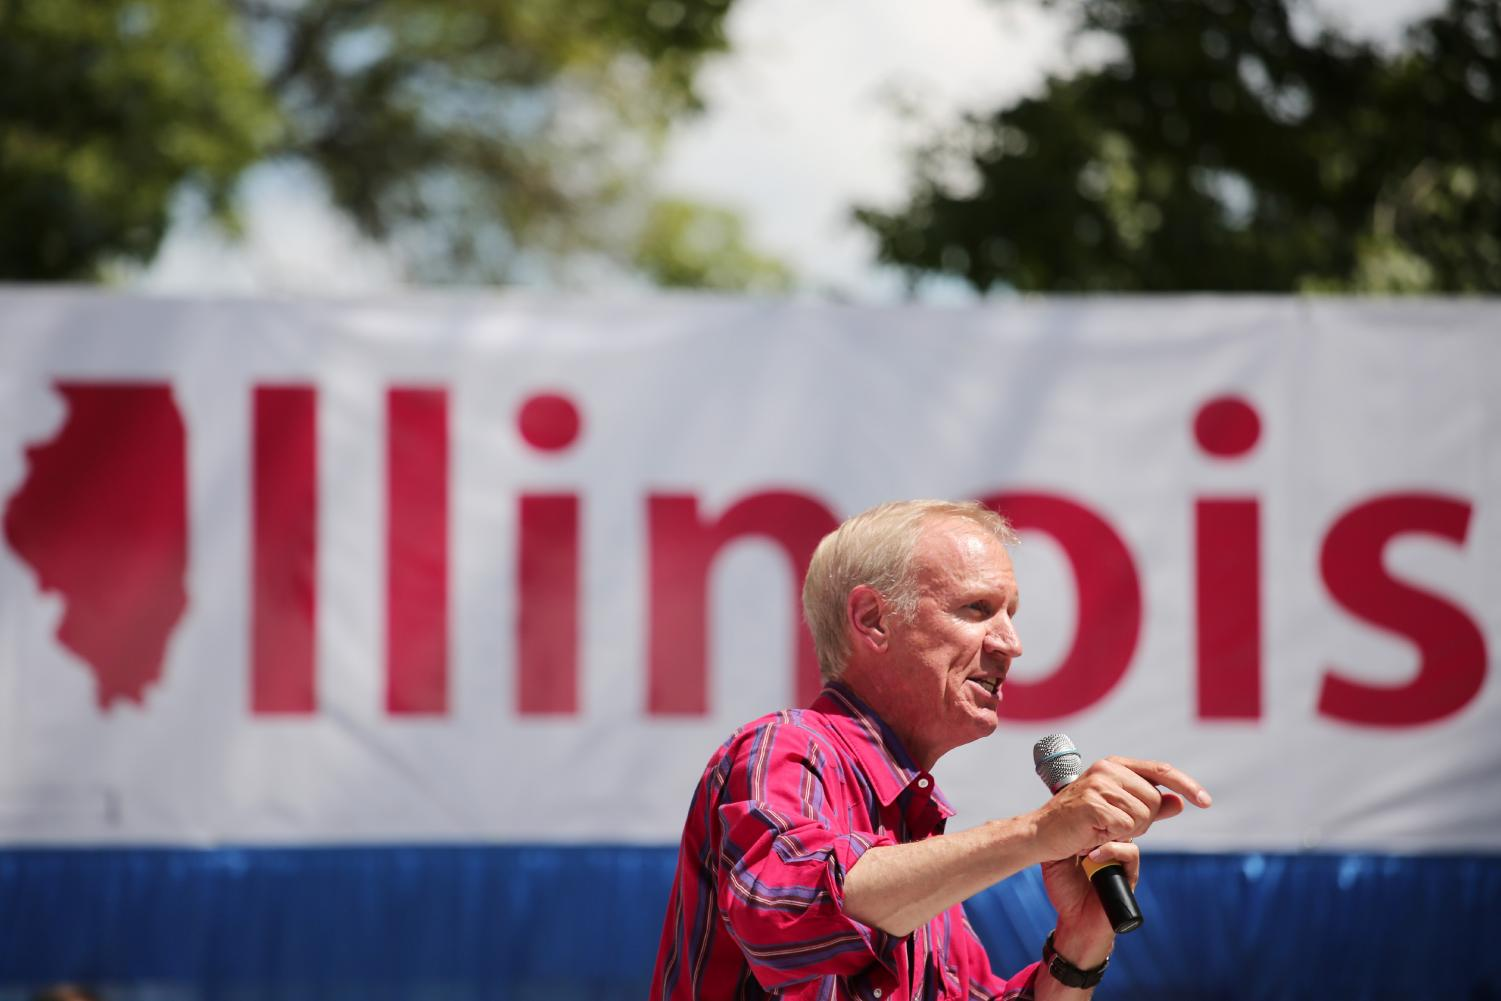 cover letter event coordinator%0A ov  Bruce Rauner delivered the annual budget address on Wednesday  Facing  reelection  he